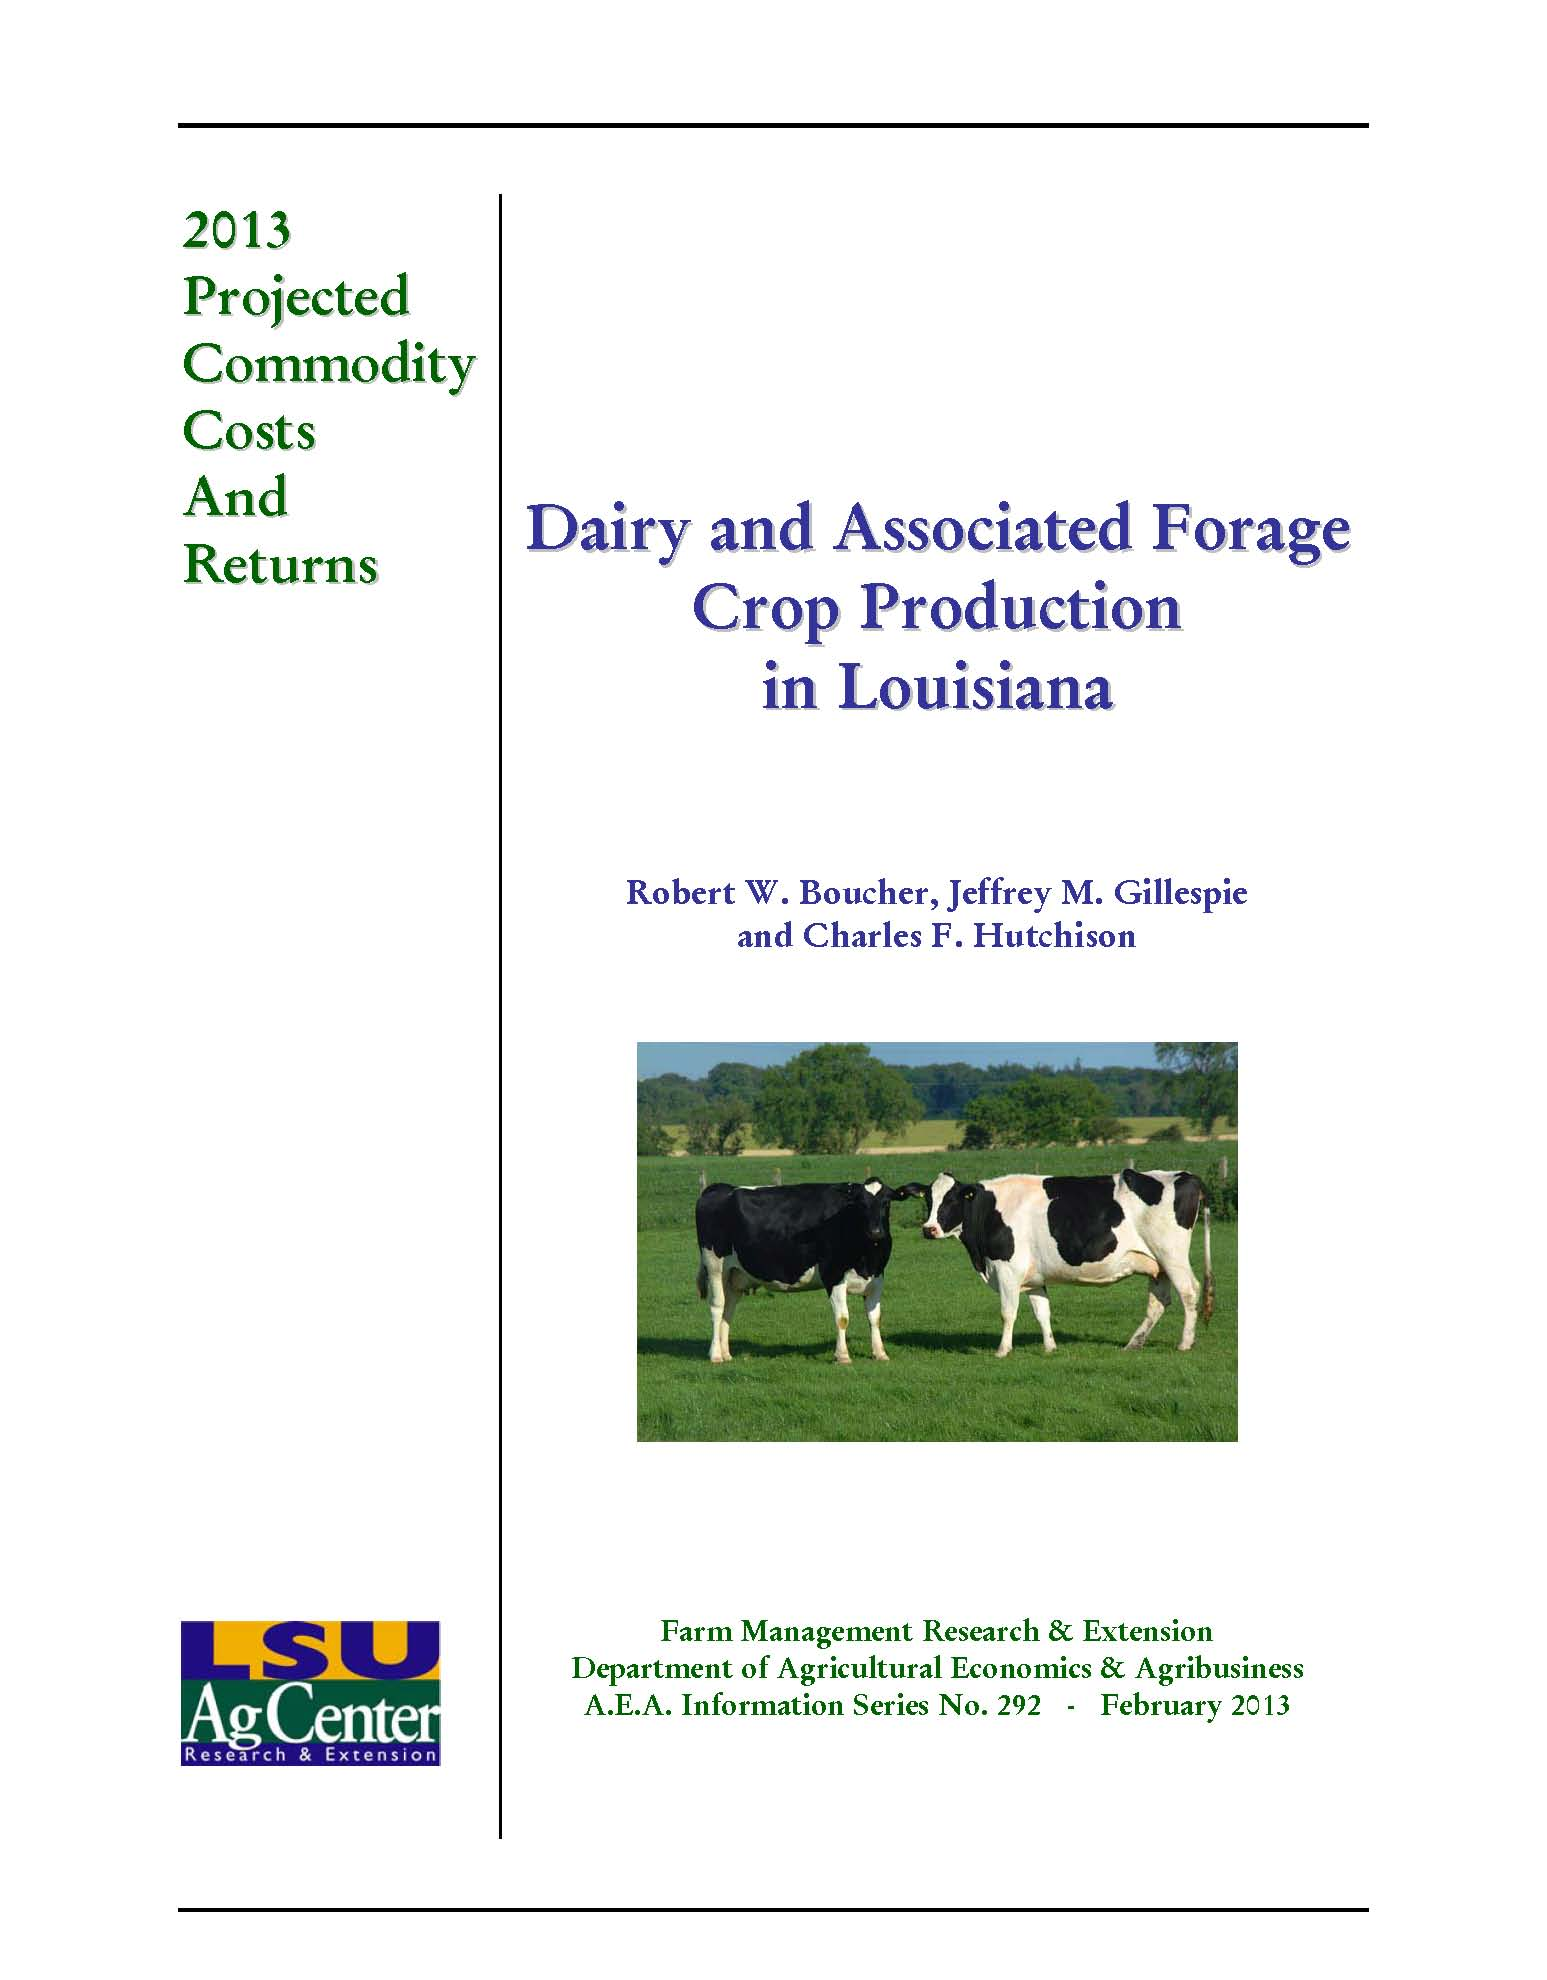 Projected Costs and Returns for Dairy and Associated Forage Crop Production in Louisiana 2013.